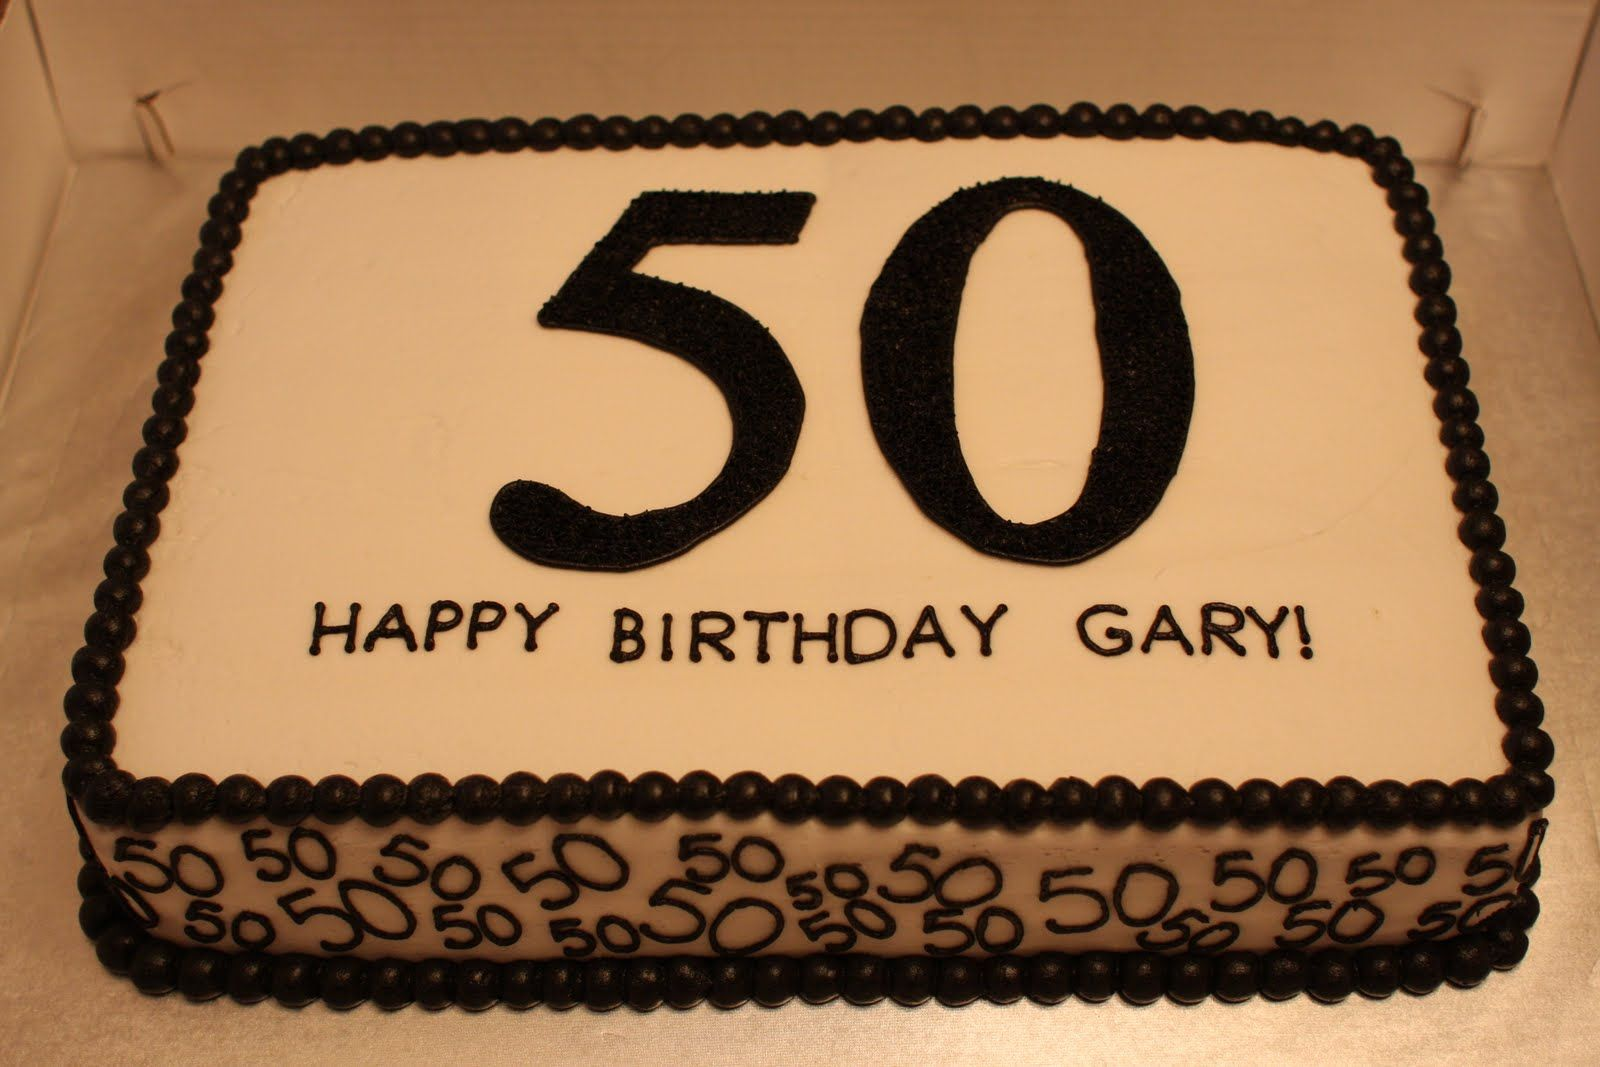 Cake Decoration Ideas For 50th Birthday : 50th birthday cake The Buttercream Bakery: 50th Birthday ...